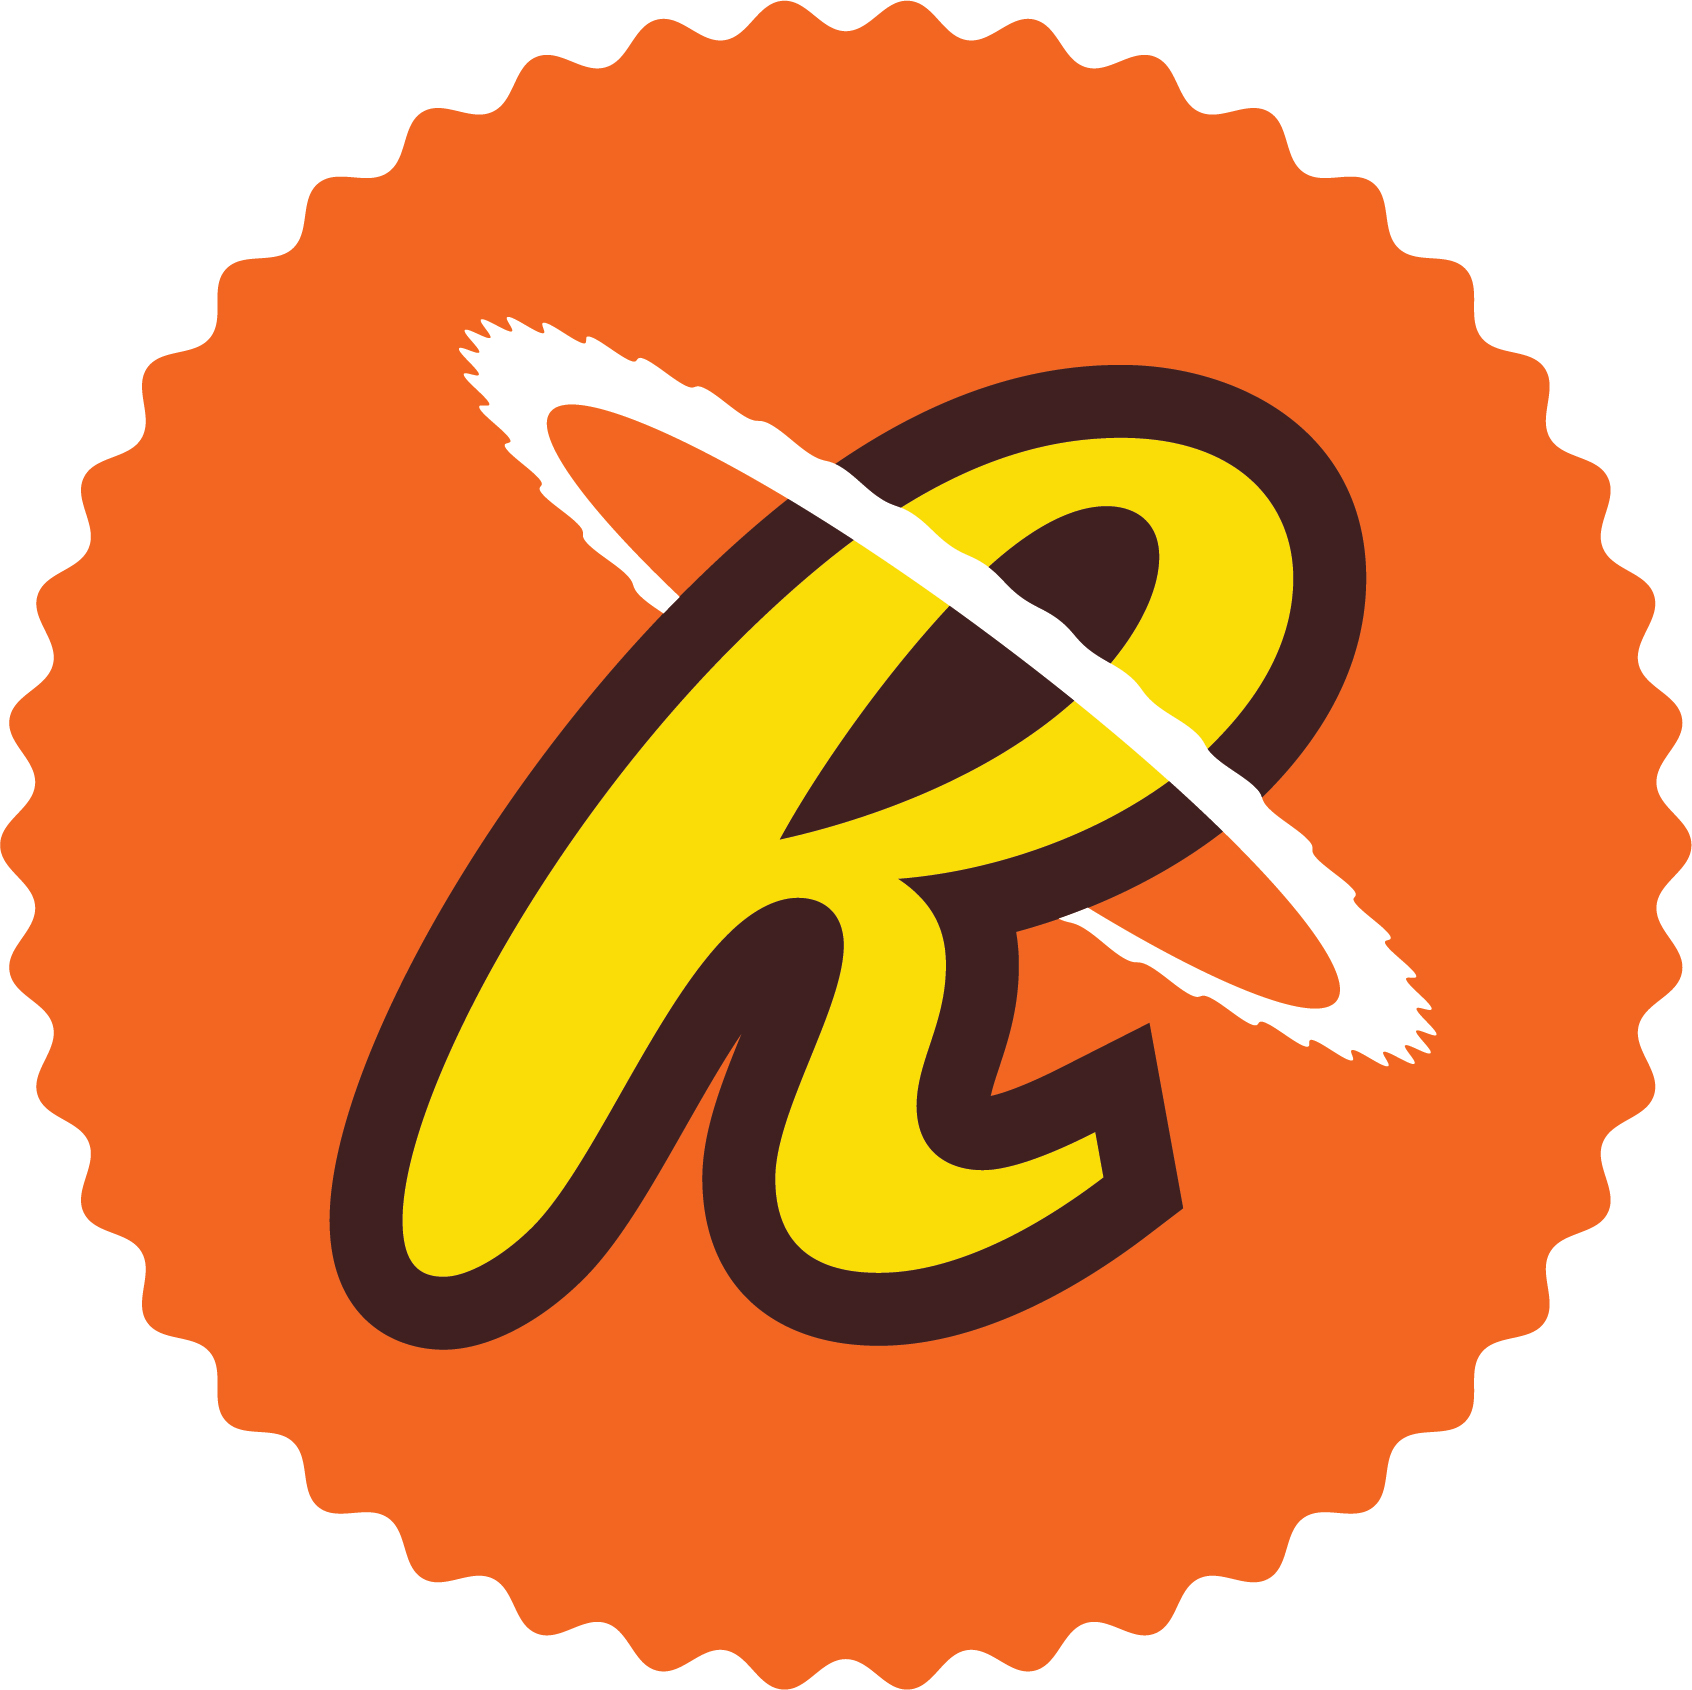 Reese's Cupfusion - Hersheypark's Newest Attraction Opening 2019